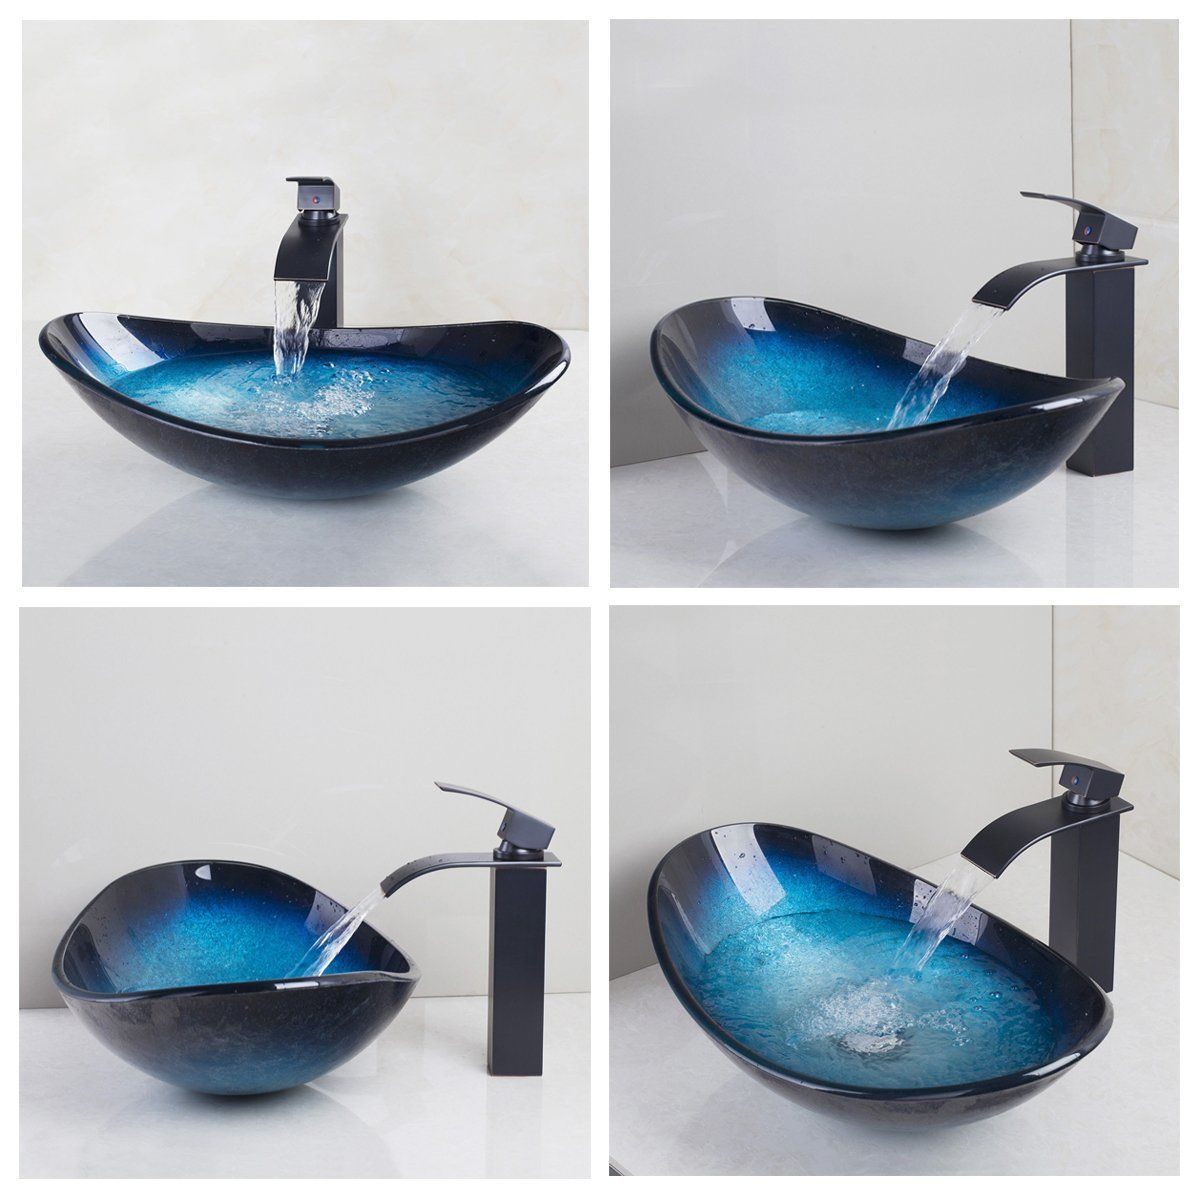 Bathroom Vessel Sink Set Contemporary Tempered Glass Matching